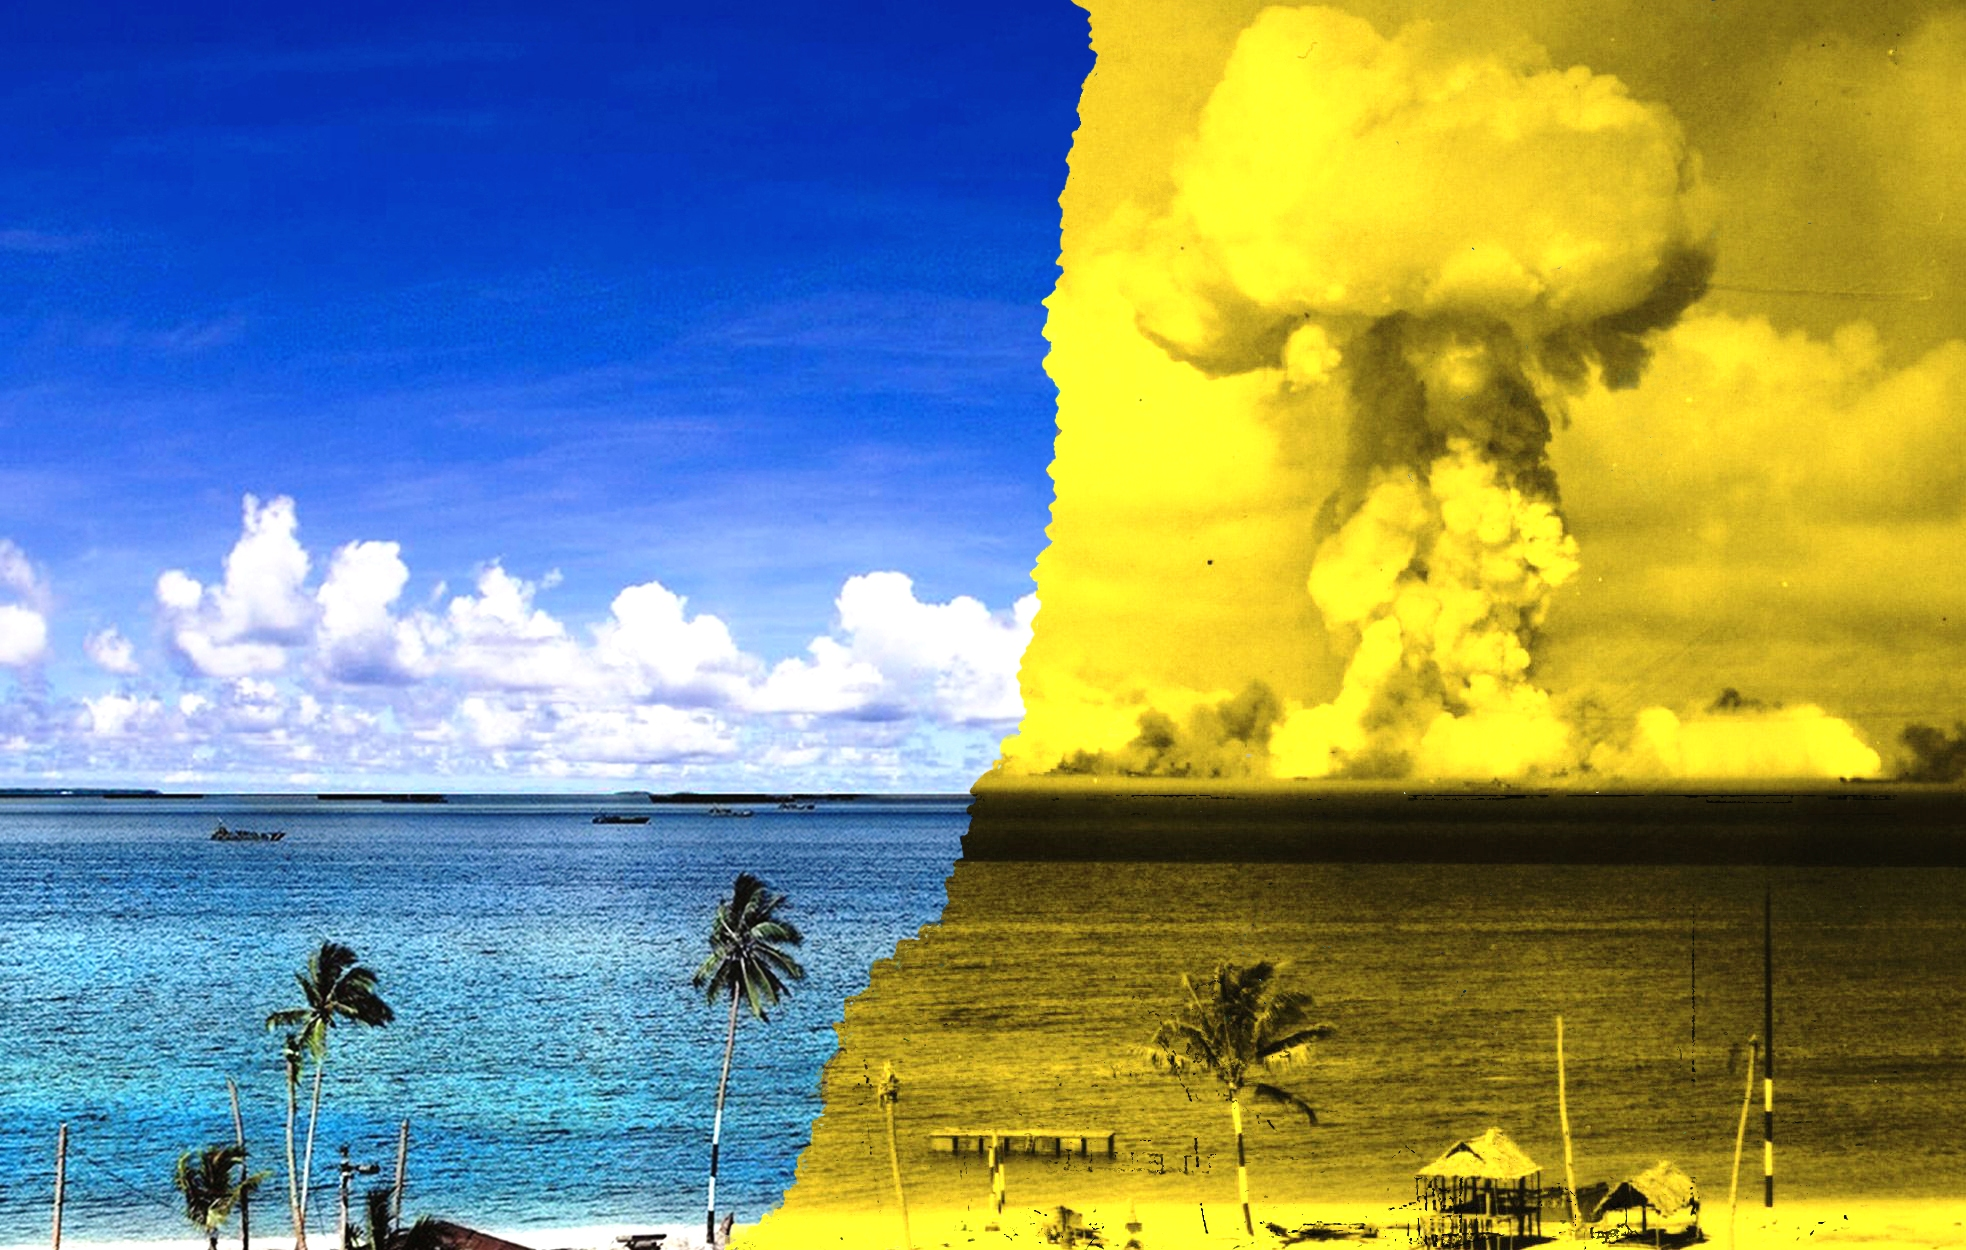 Marshall_Islands_nuclear_testing_photo_combined_2.jpg